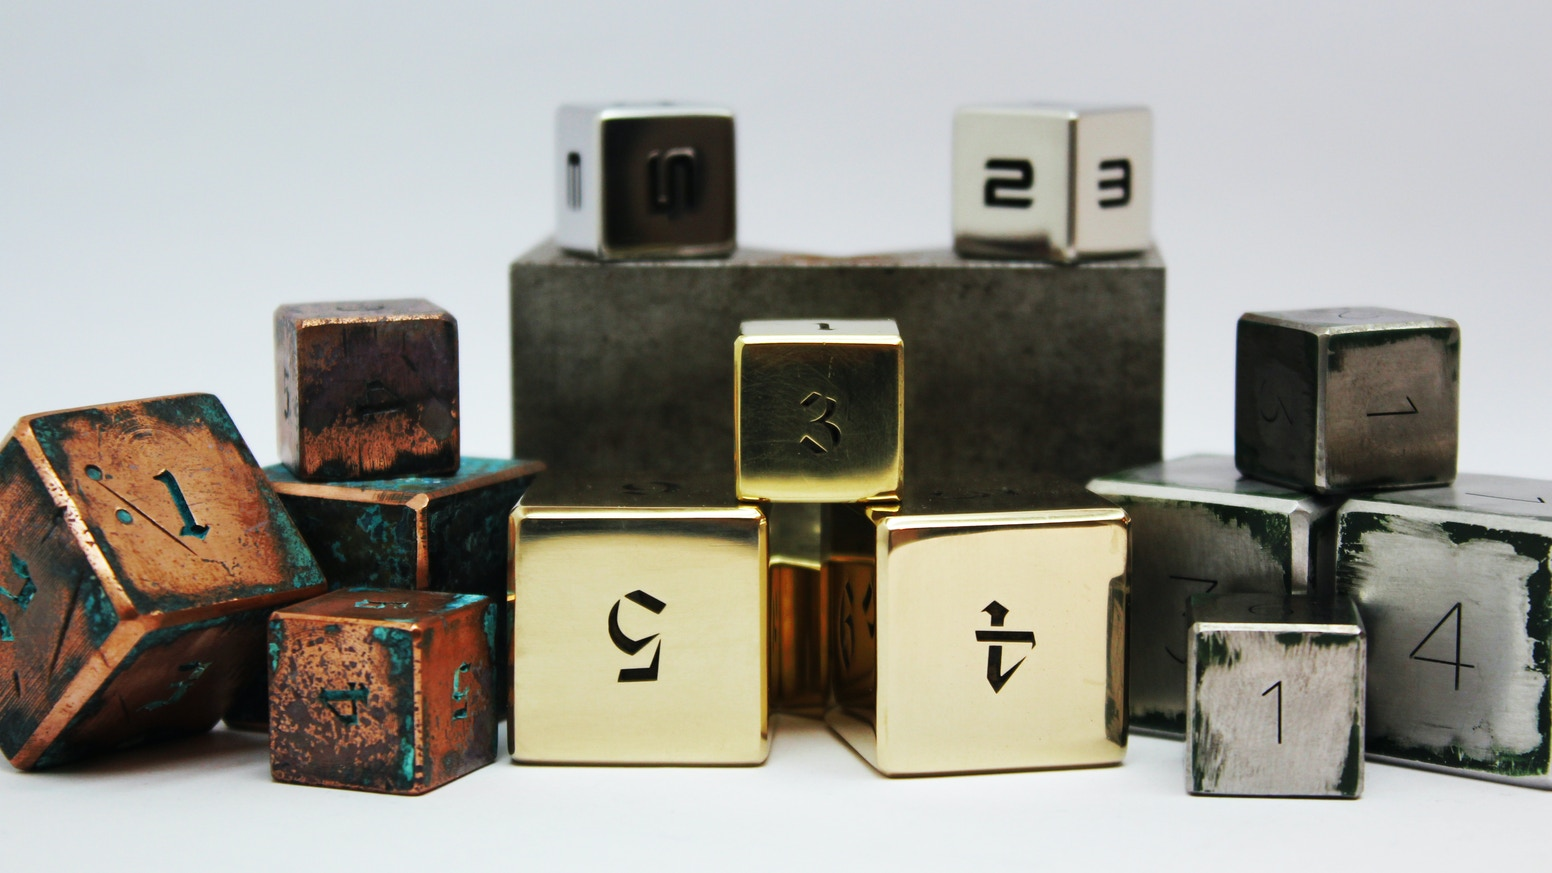 Original Metal Dice from Pure Natural Metals are created! Soon the World will change ...